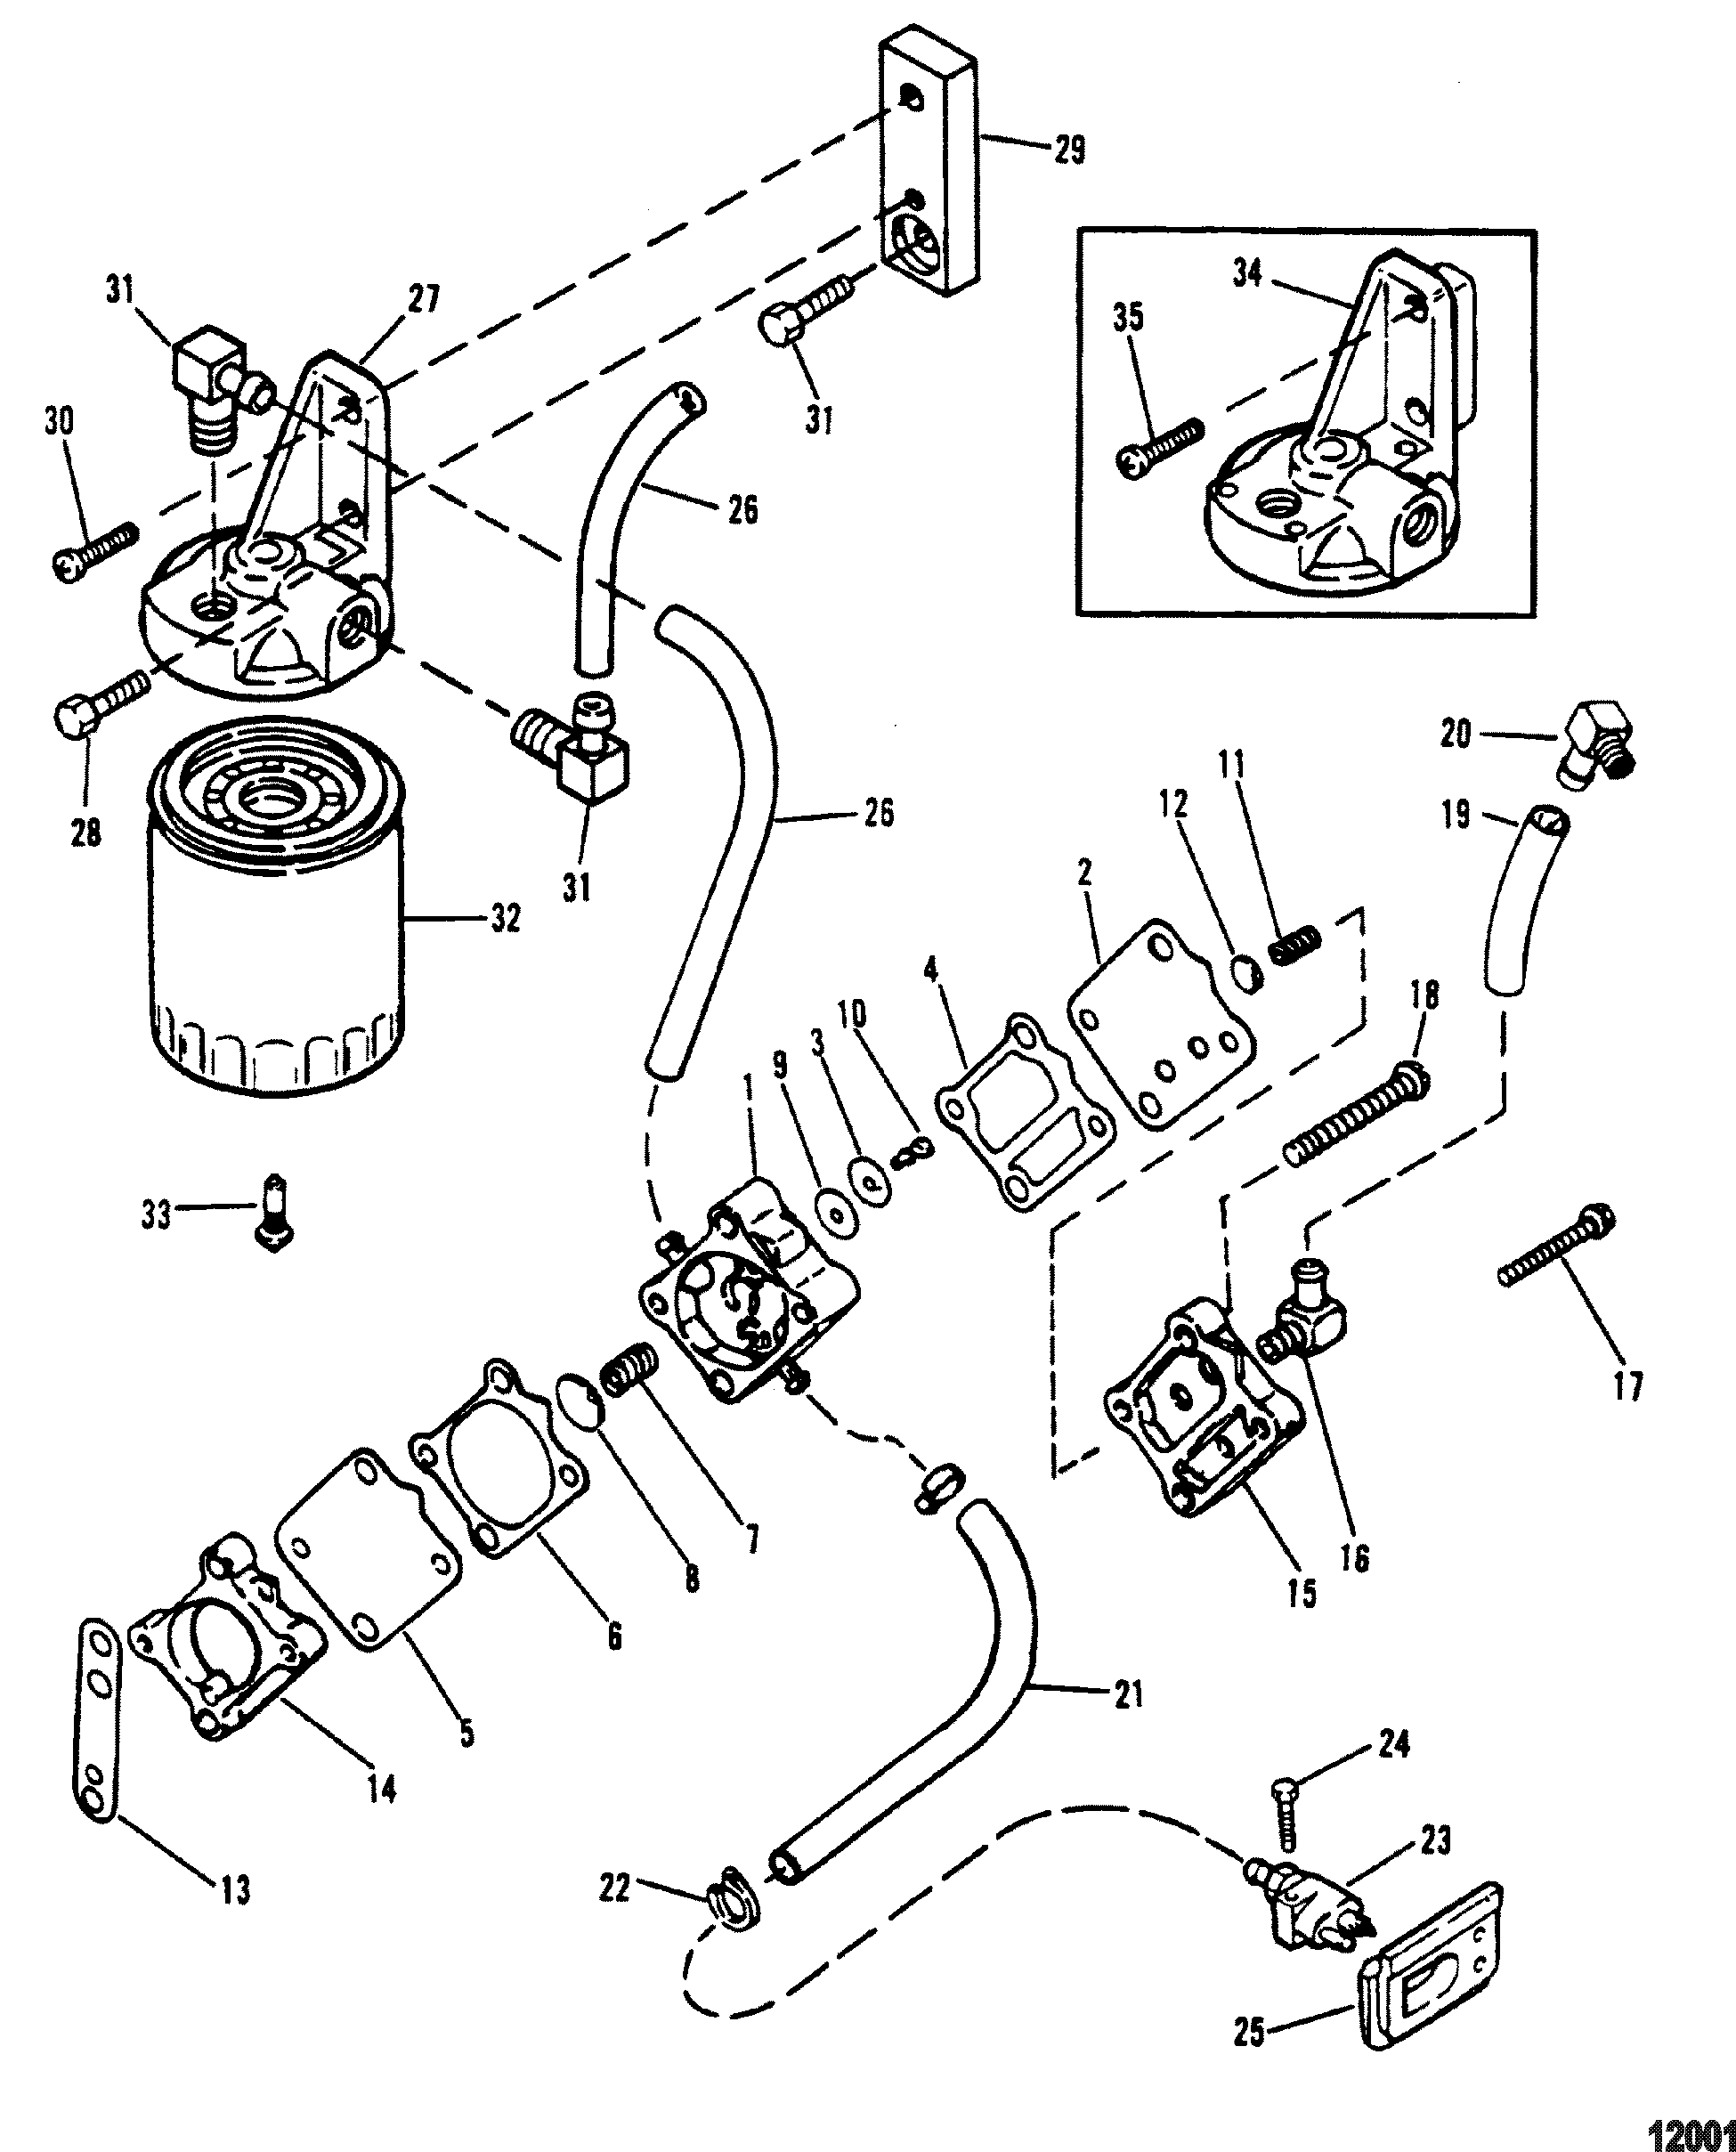 Chevy 350 Marine Wiring Diagram Wiring Schematics And Diagrams